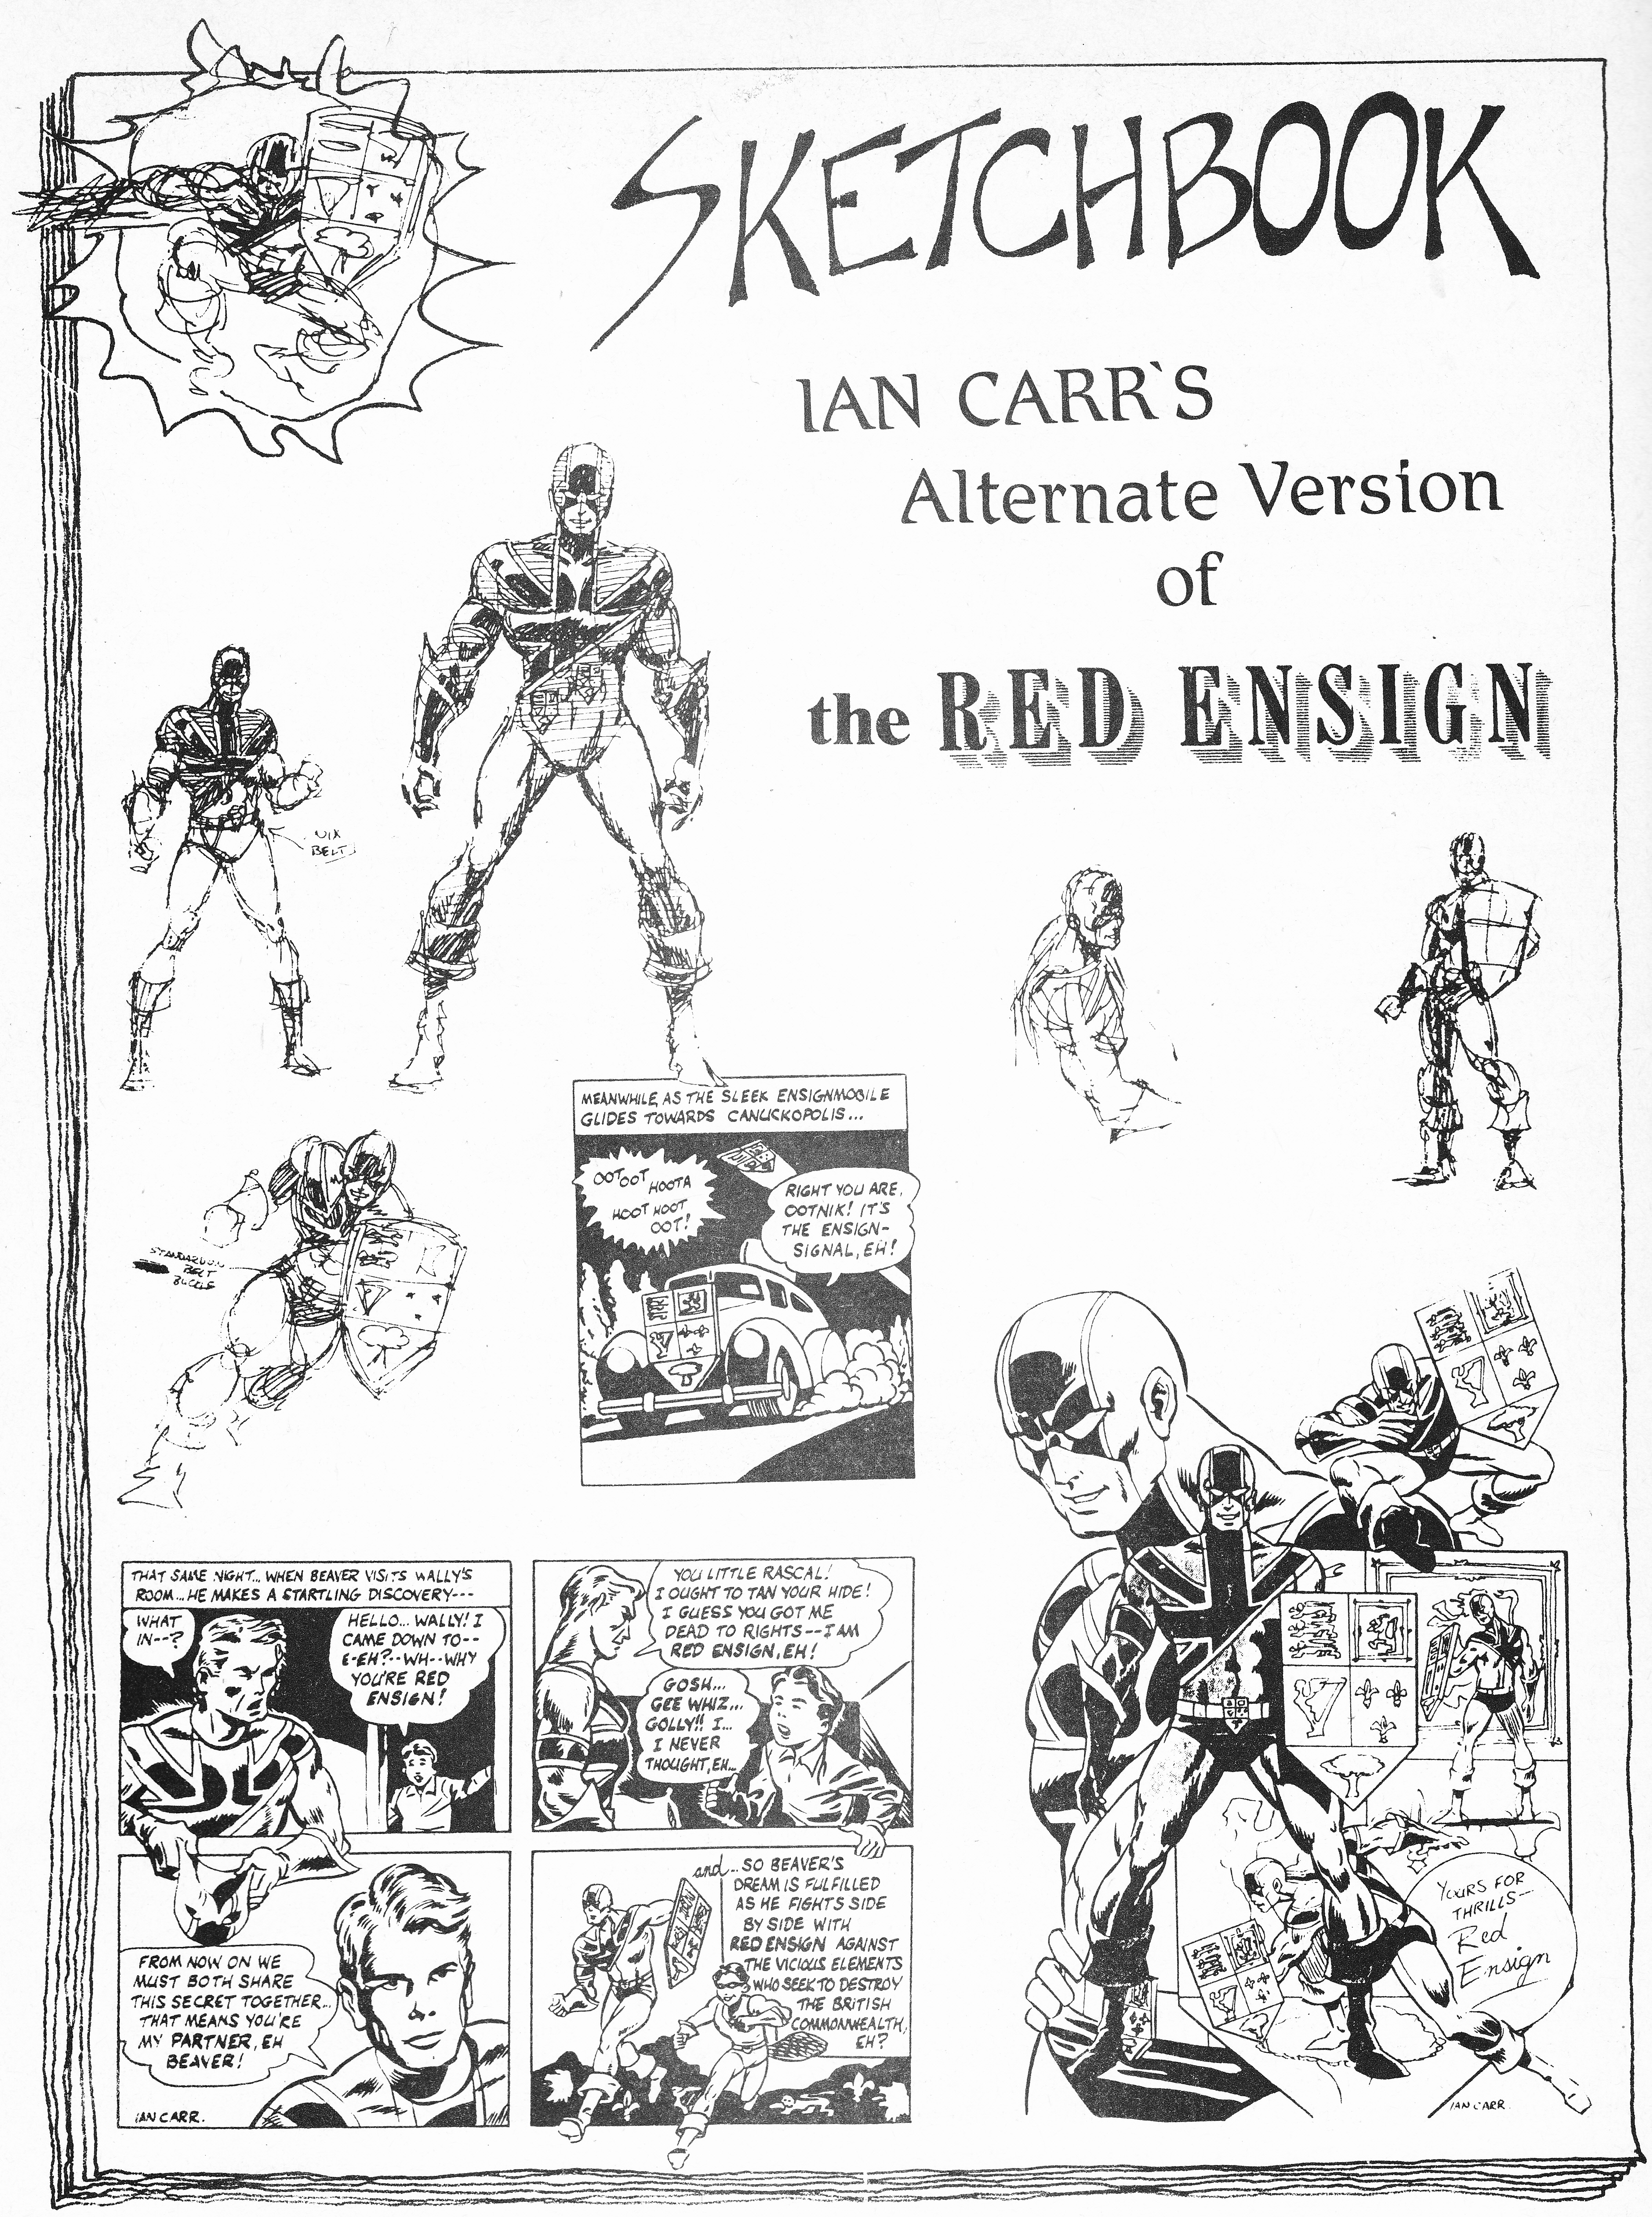 C:\Users\Robert\Documents\CARTOONING ILLUSTRATION ANIMATION\IMAGE CARTOON\IMAGE CARTOON R\RED ENSIGN, Orion, 1-2, 1982, 62.jpg